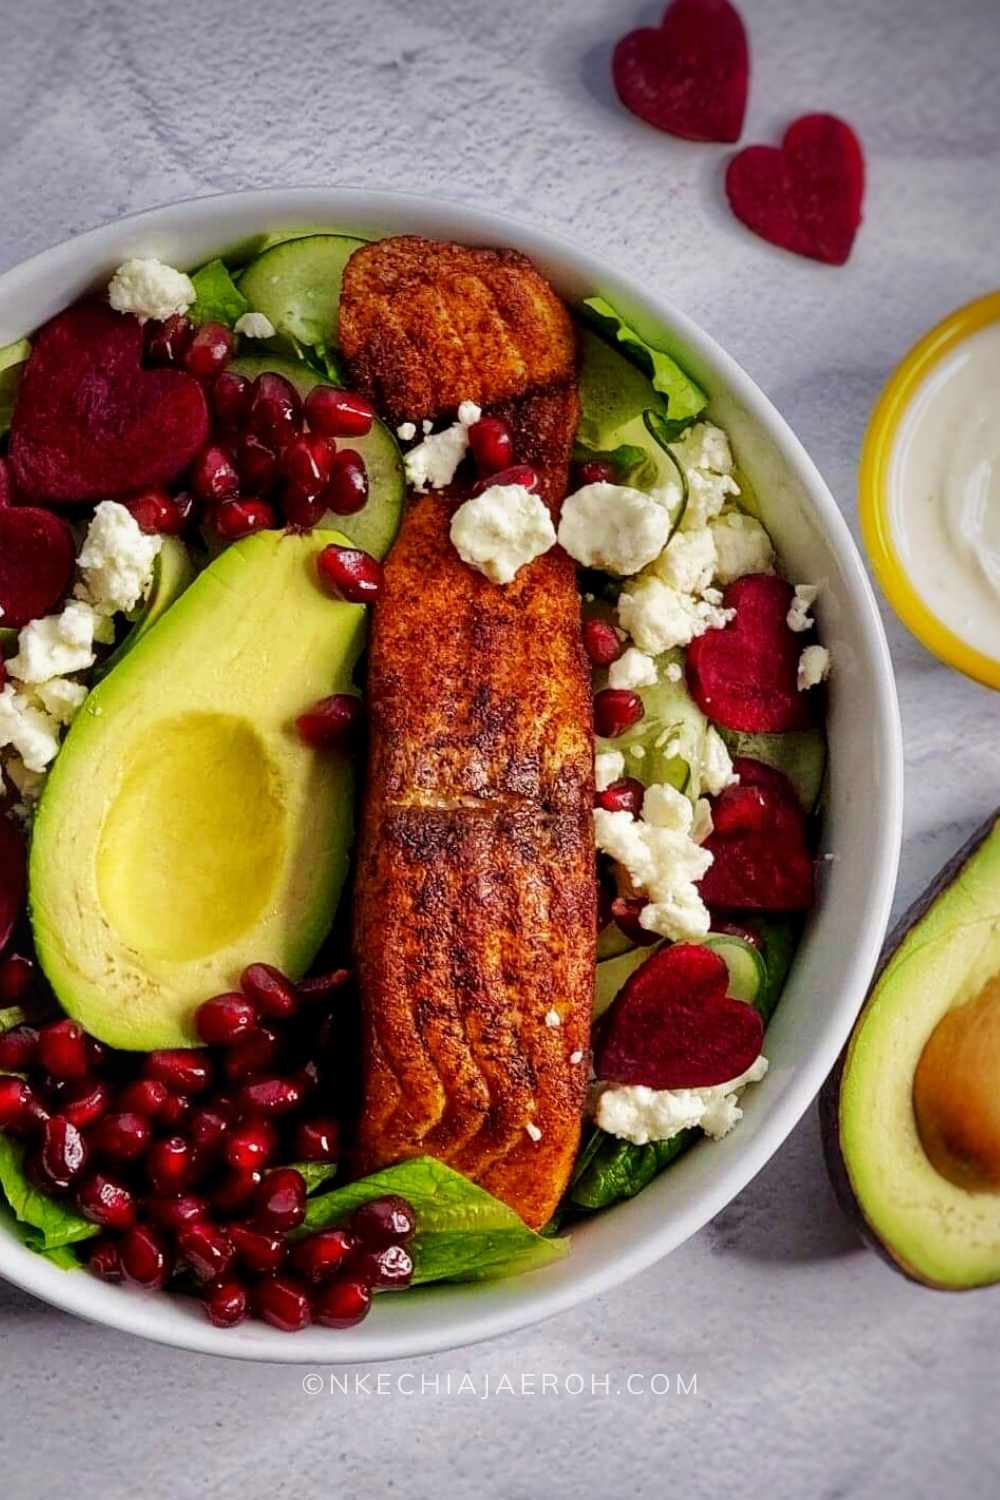 This salad is loaded with lettuce, cucumber, avocado, and salmon; serve with creamy yogurt dressing and top with your favorite things! I added pomegranate seeds, and it was perfect; the best part is that this recipe takes less than 15 minutes to put together.